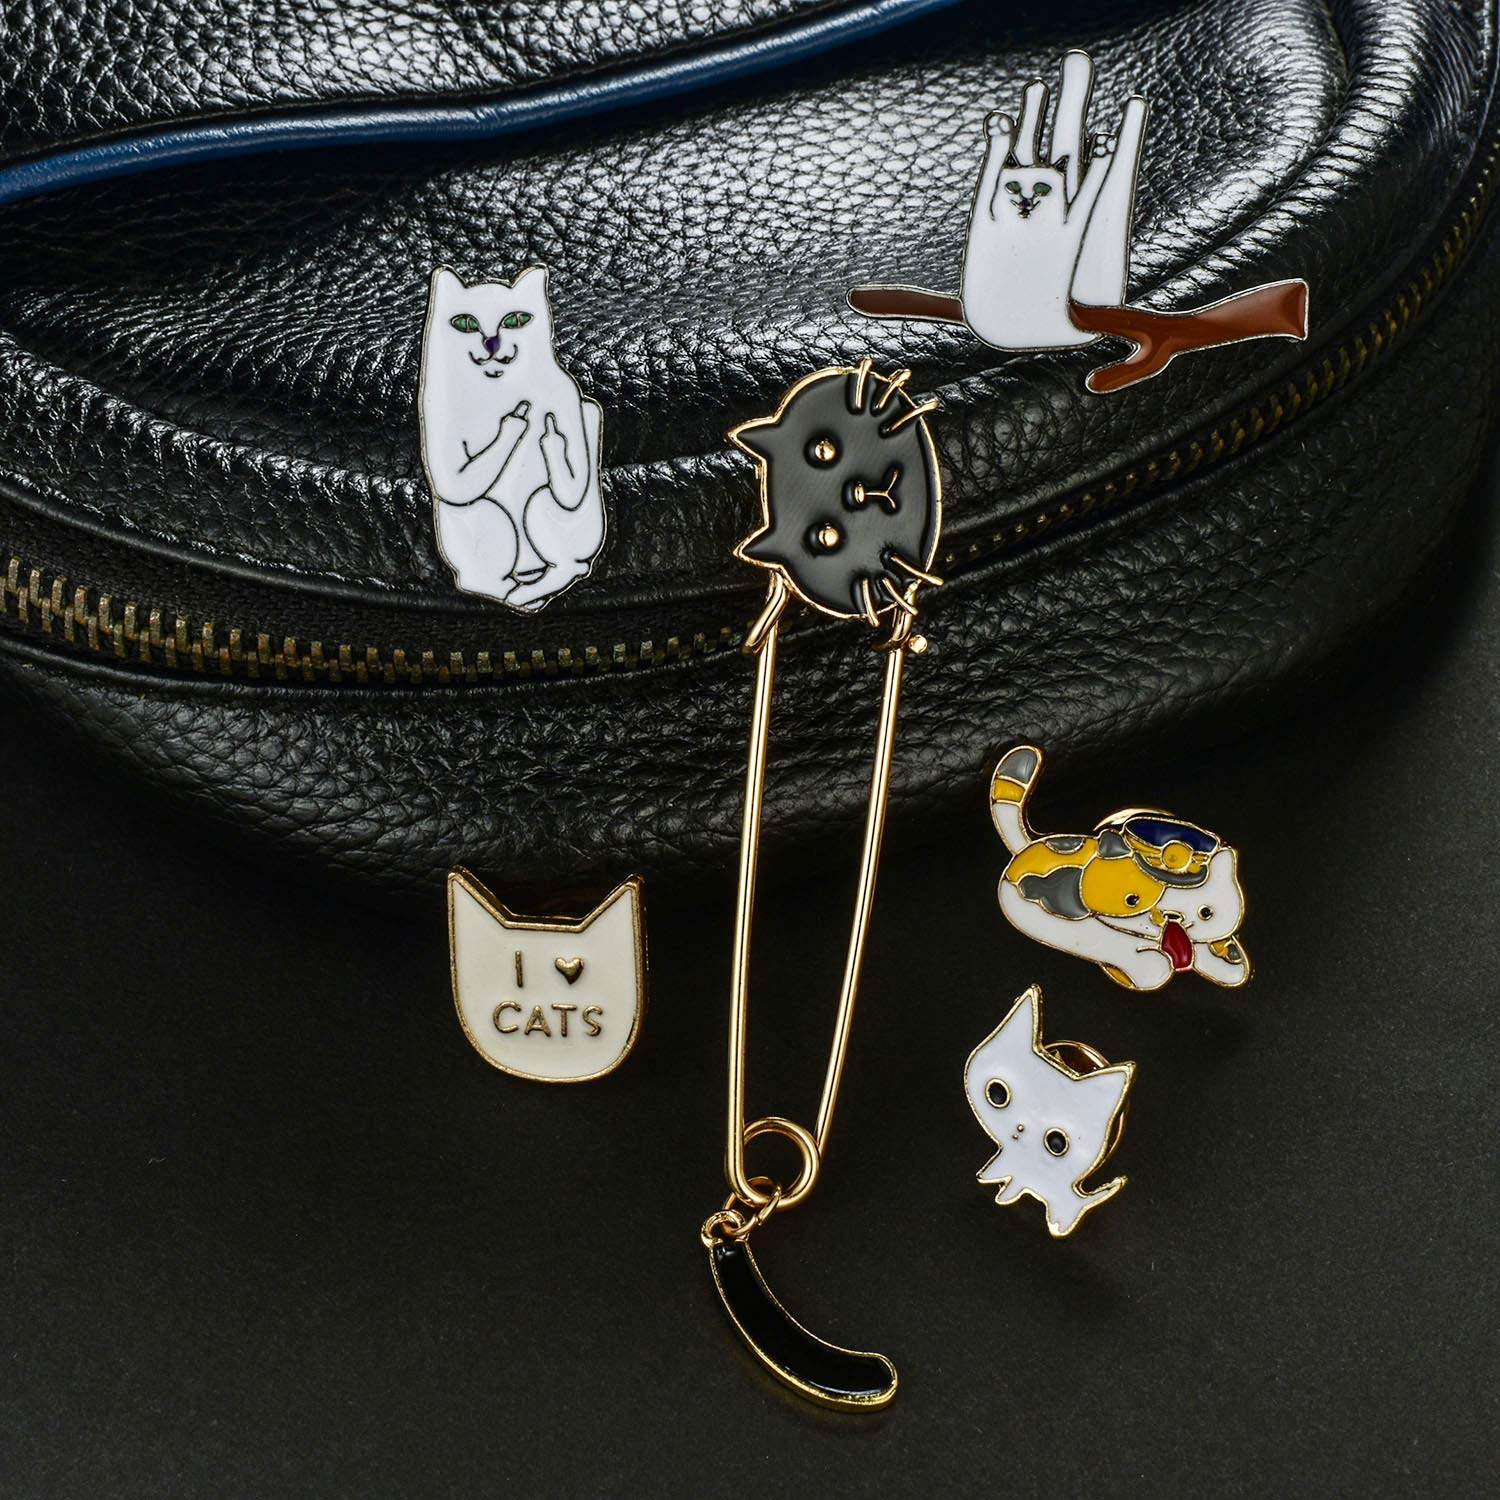 YengHome Cute Enamel Lapel Pins Brooches Sets DIY Dogs Cats Animal Plant Punk Christmas Halloween Brooches Pin Badges for Clothing Bags Backpacks Jackets Hat